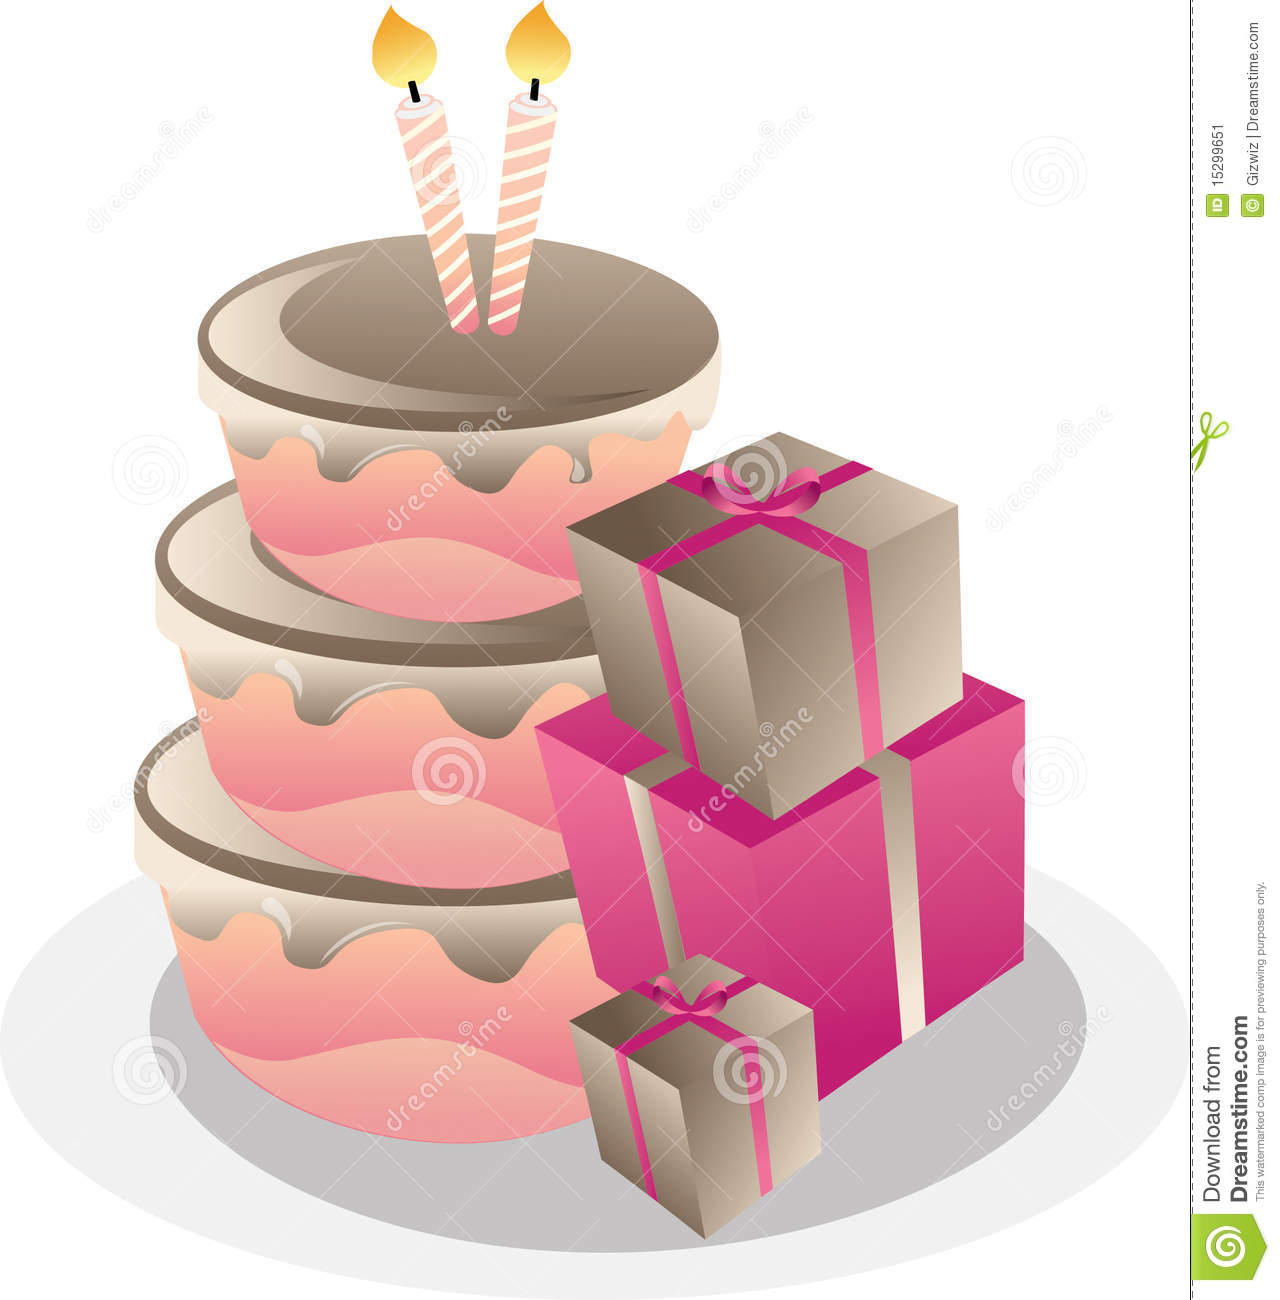 Birthday Cake And Gift Boxes. Stock Image - Image: 15299651